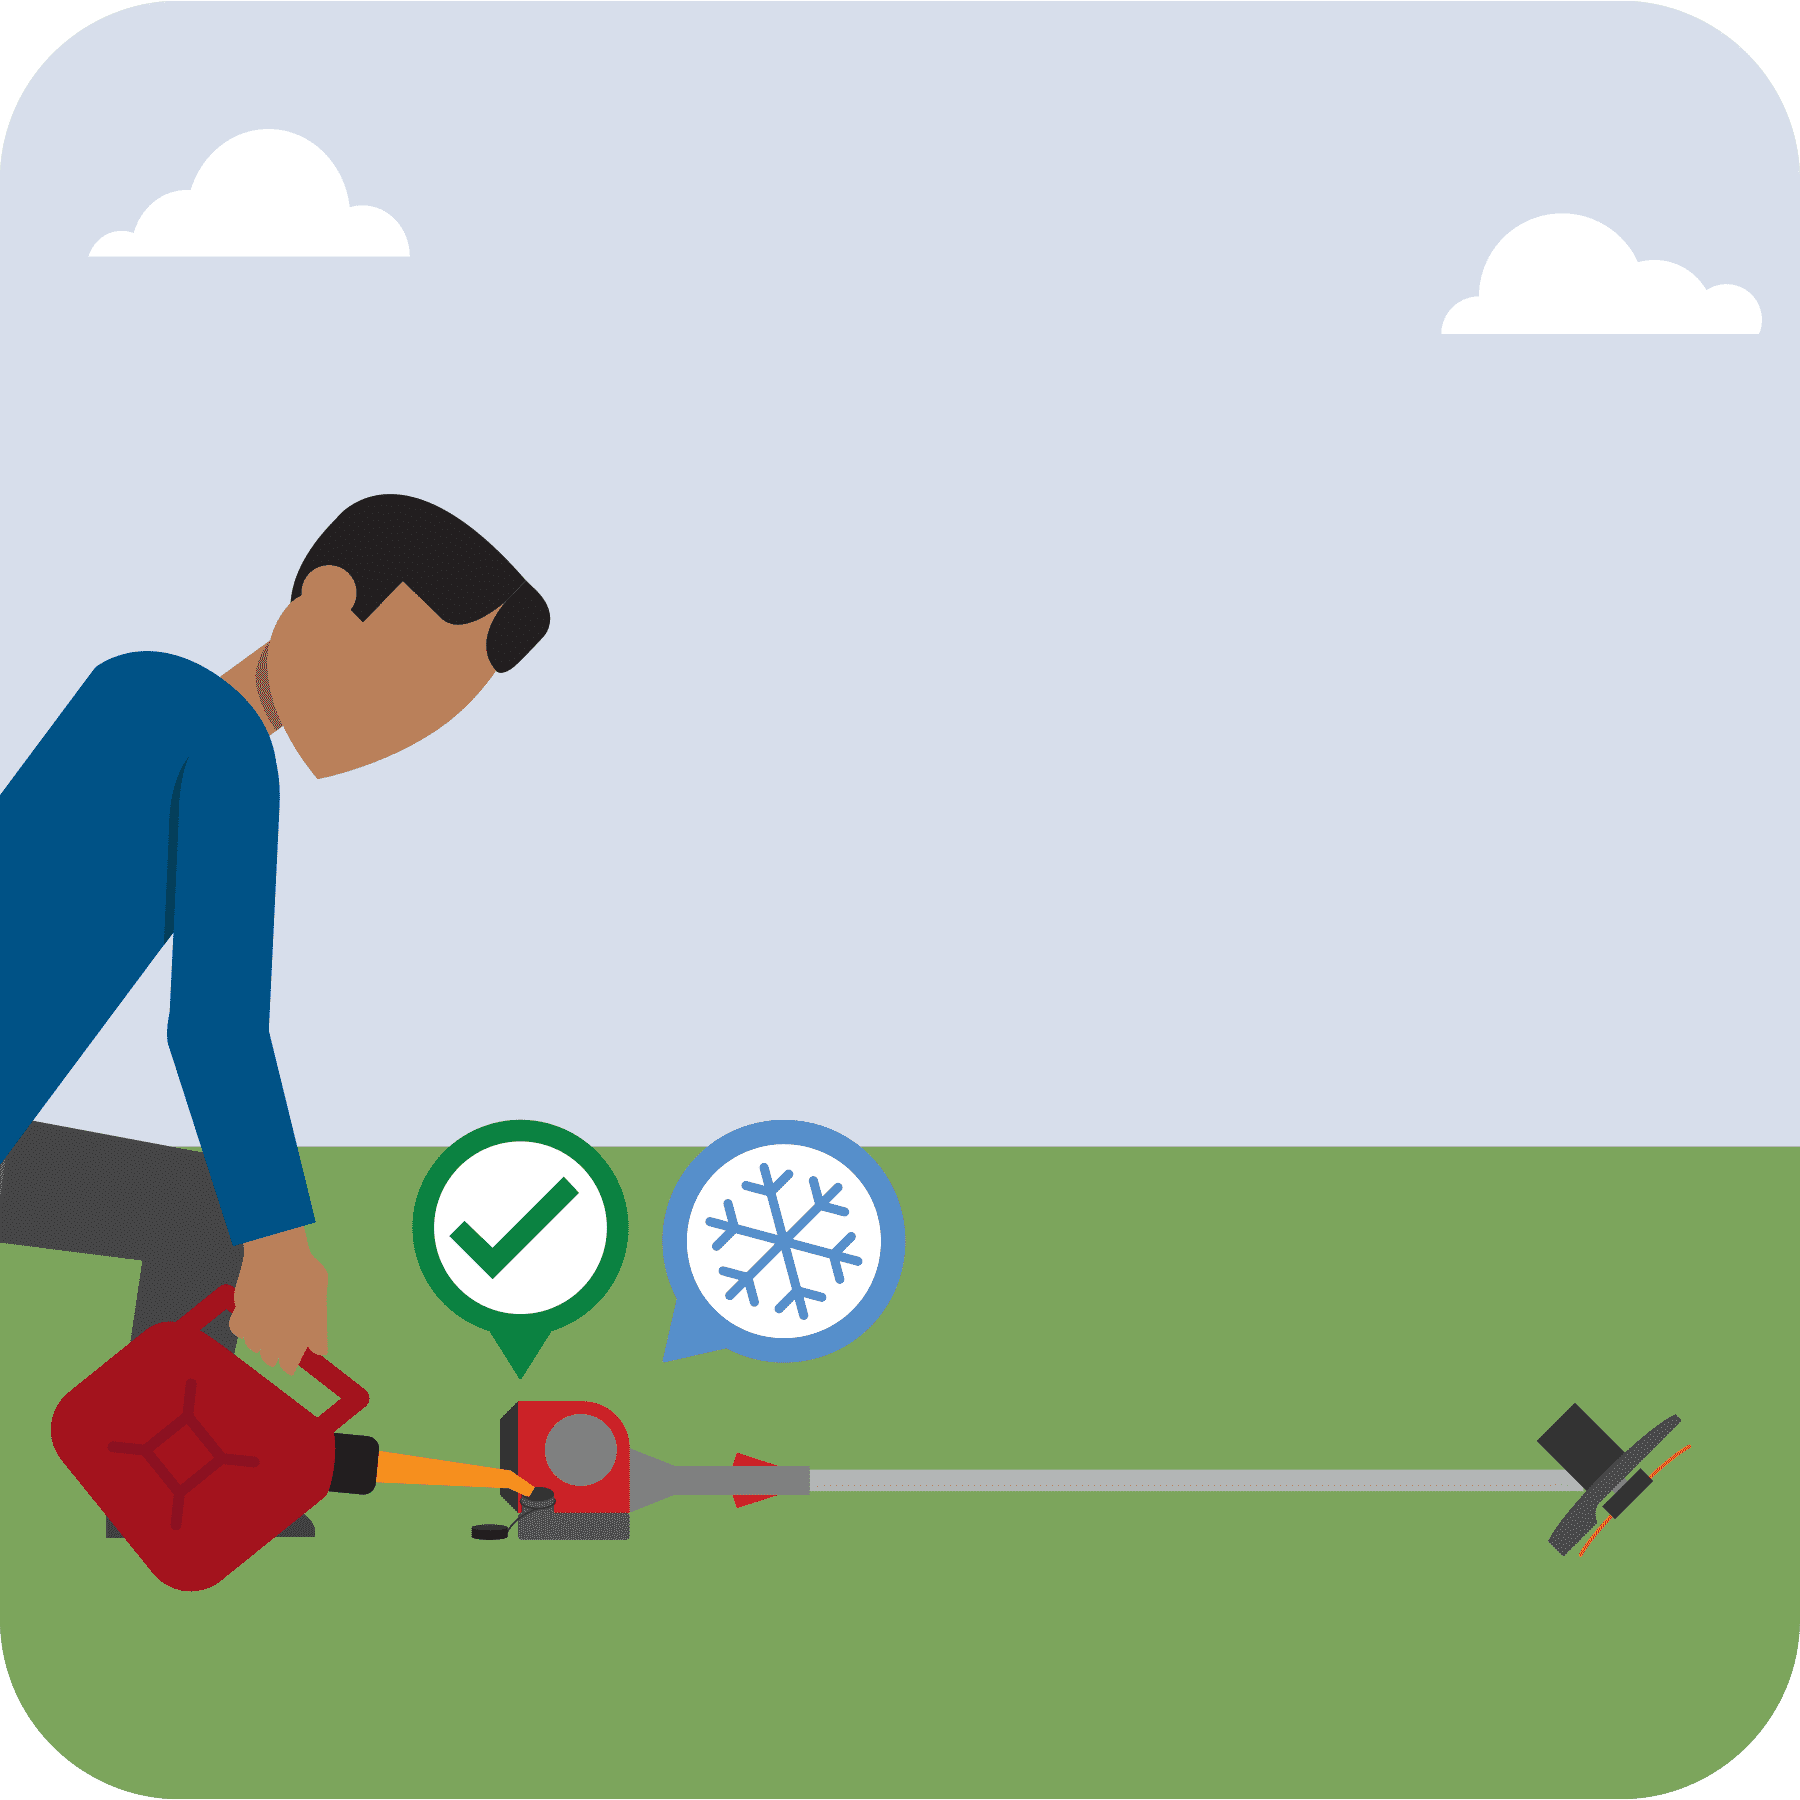 A man is fueling a cool weed trimmer. A green checkmark is over the trimmer.